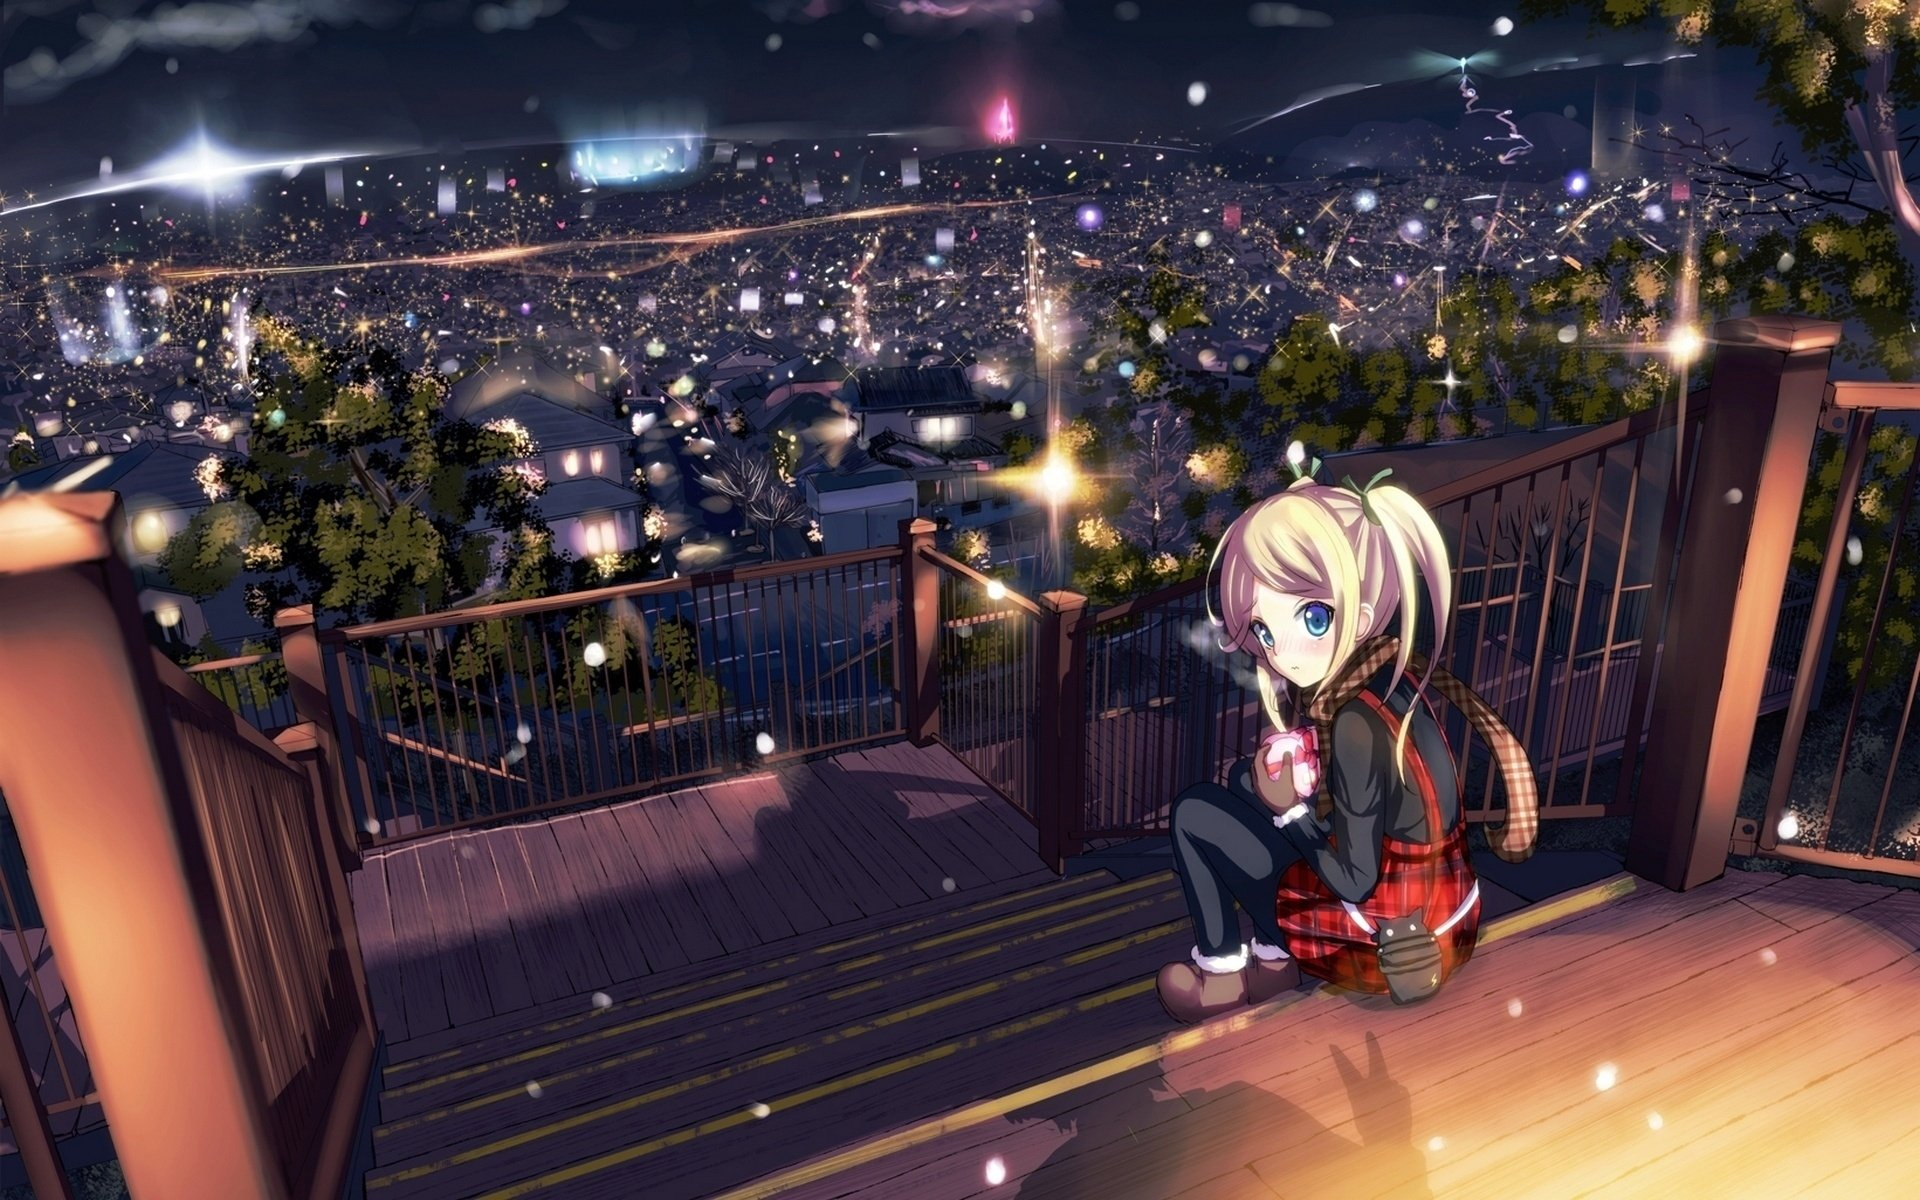 Anime - Original  Landscape City Sky Light Tree Fence Blonde Blue Eyes Gift Chocolate Valentine's Day Scarf Boots Morerin Snow Winter Cityscape Anime Original (Anime) Wallpaper